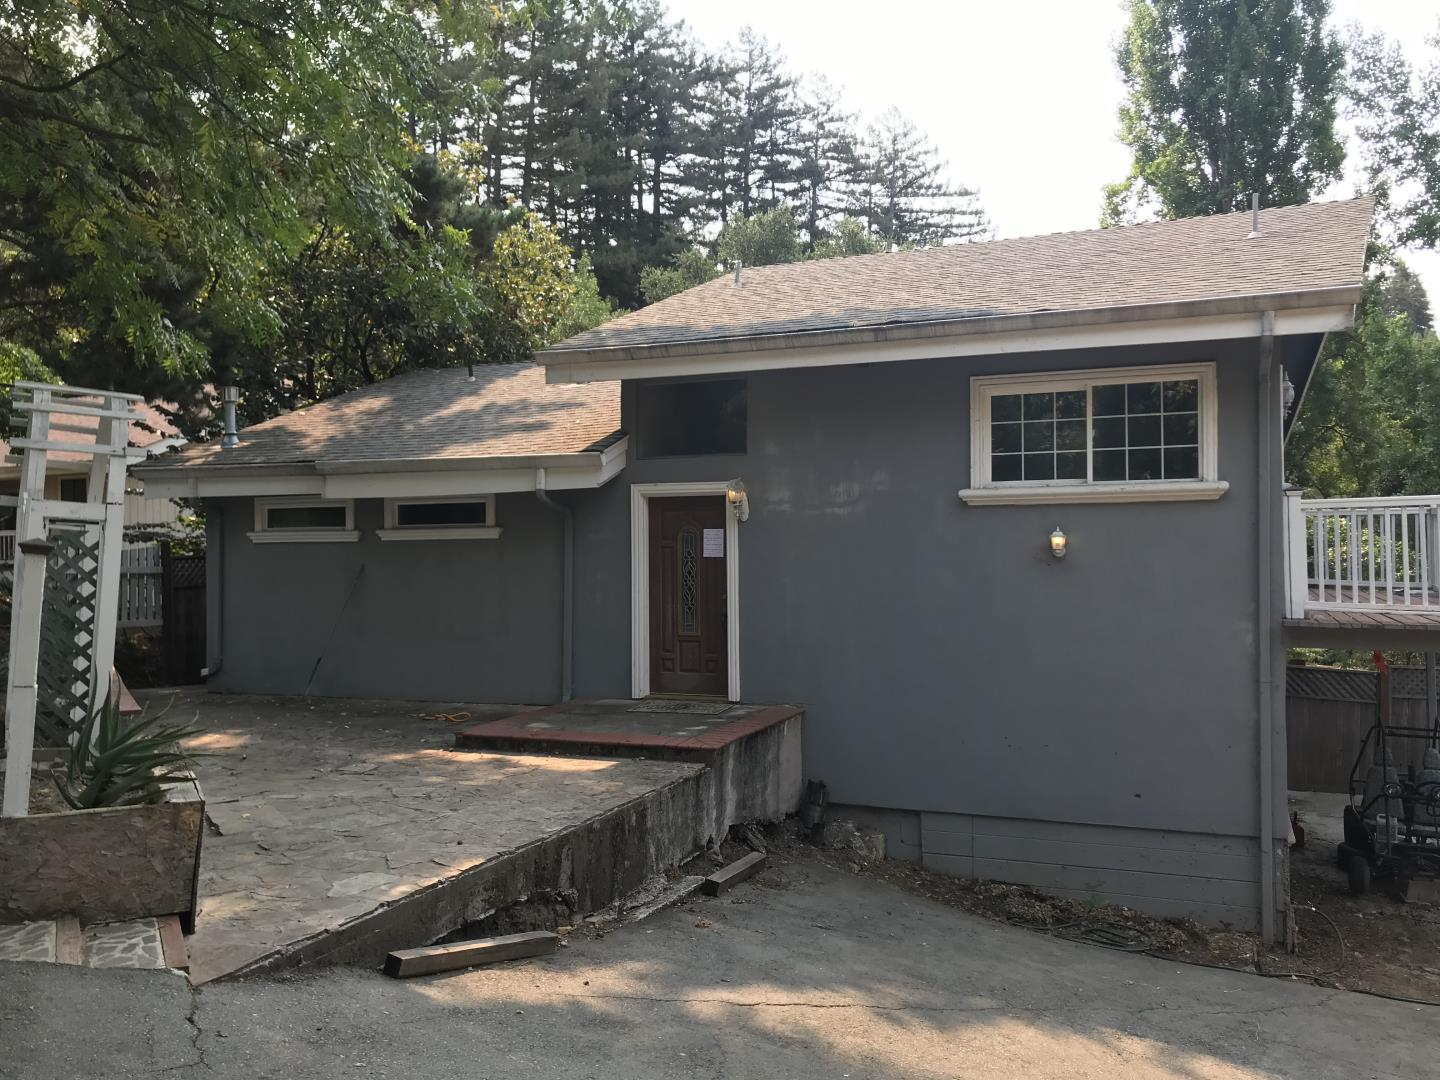 Property has building code violations.  Seller has been working with the county for 8 years trying to resolve but county has been uncooperative.  Seller did many upgrades while living there. Award winning Los Gatos schools. Move in ready.  Home has been a rental for the past 5 years.  Tenants to vacate by Oct 1.  Investment opportunity as a long term or short term rental. Record of violations from the county is available with seller disclosures.  Potential buyer must read and acknowledge all disclosures before any scheduled showings.  No bank financing or FHA loans.  Cash or private loan only, no seller financing.  Buyers are to contact their agent for required documentation to see this property.  Listing agent does not know the cost to rectify issues.